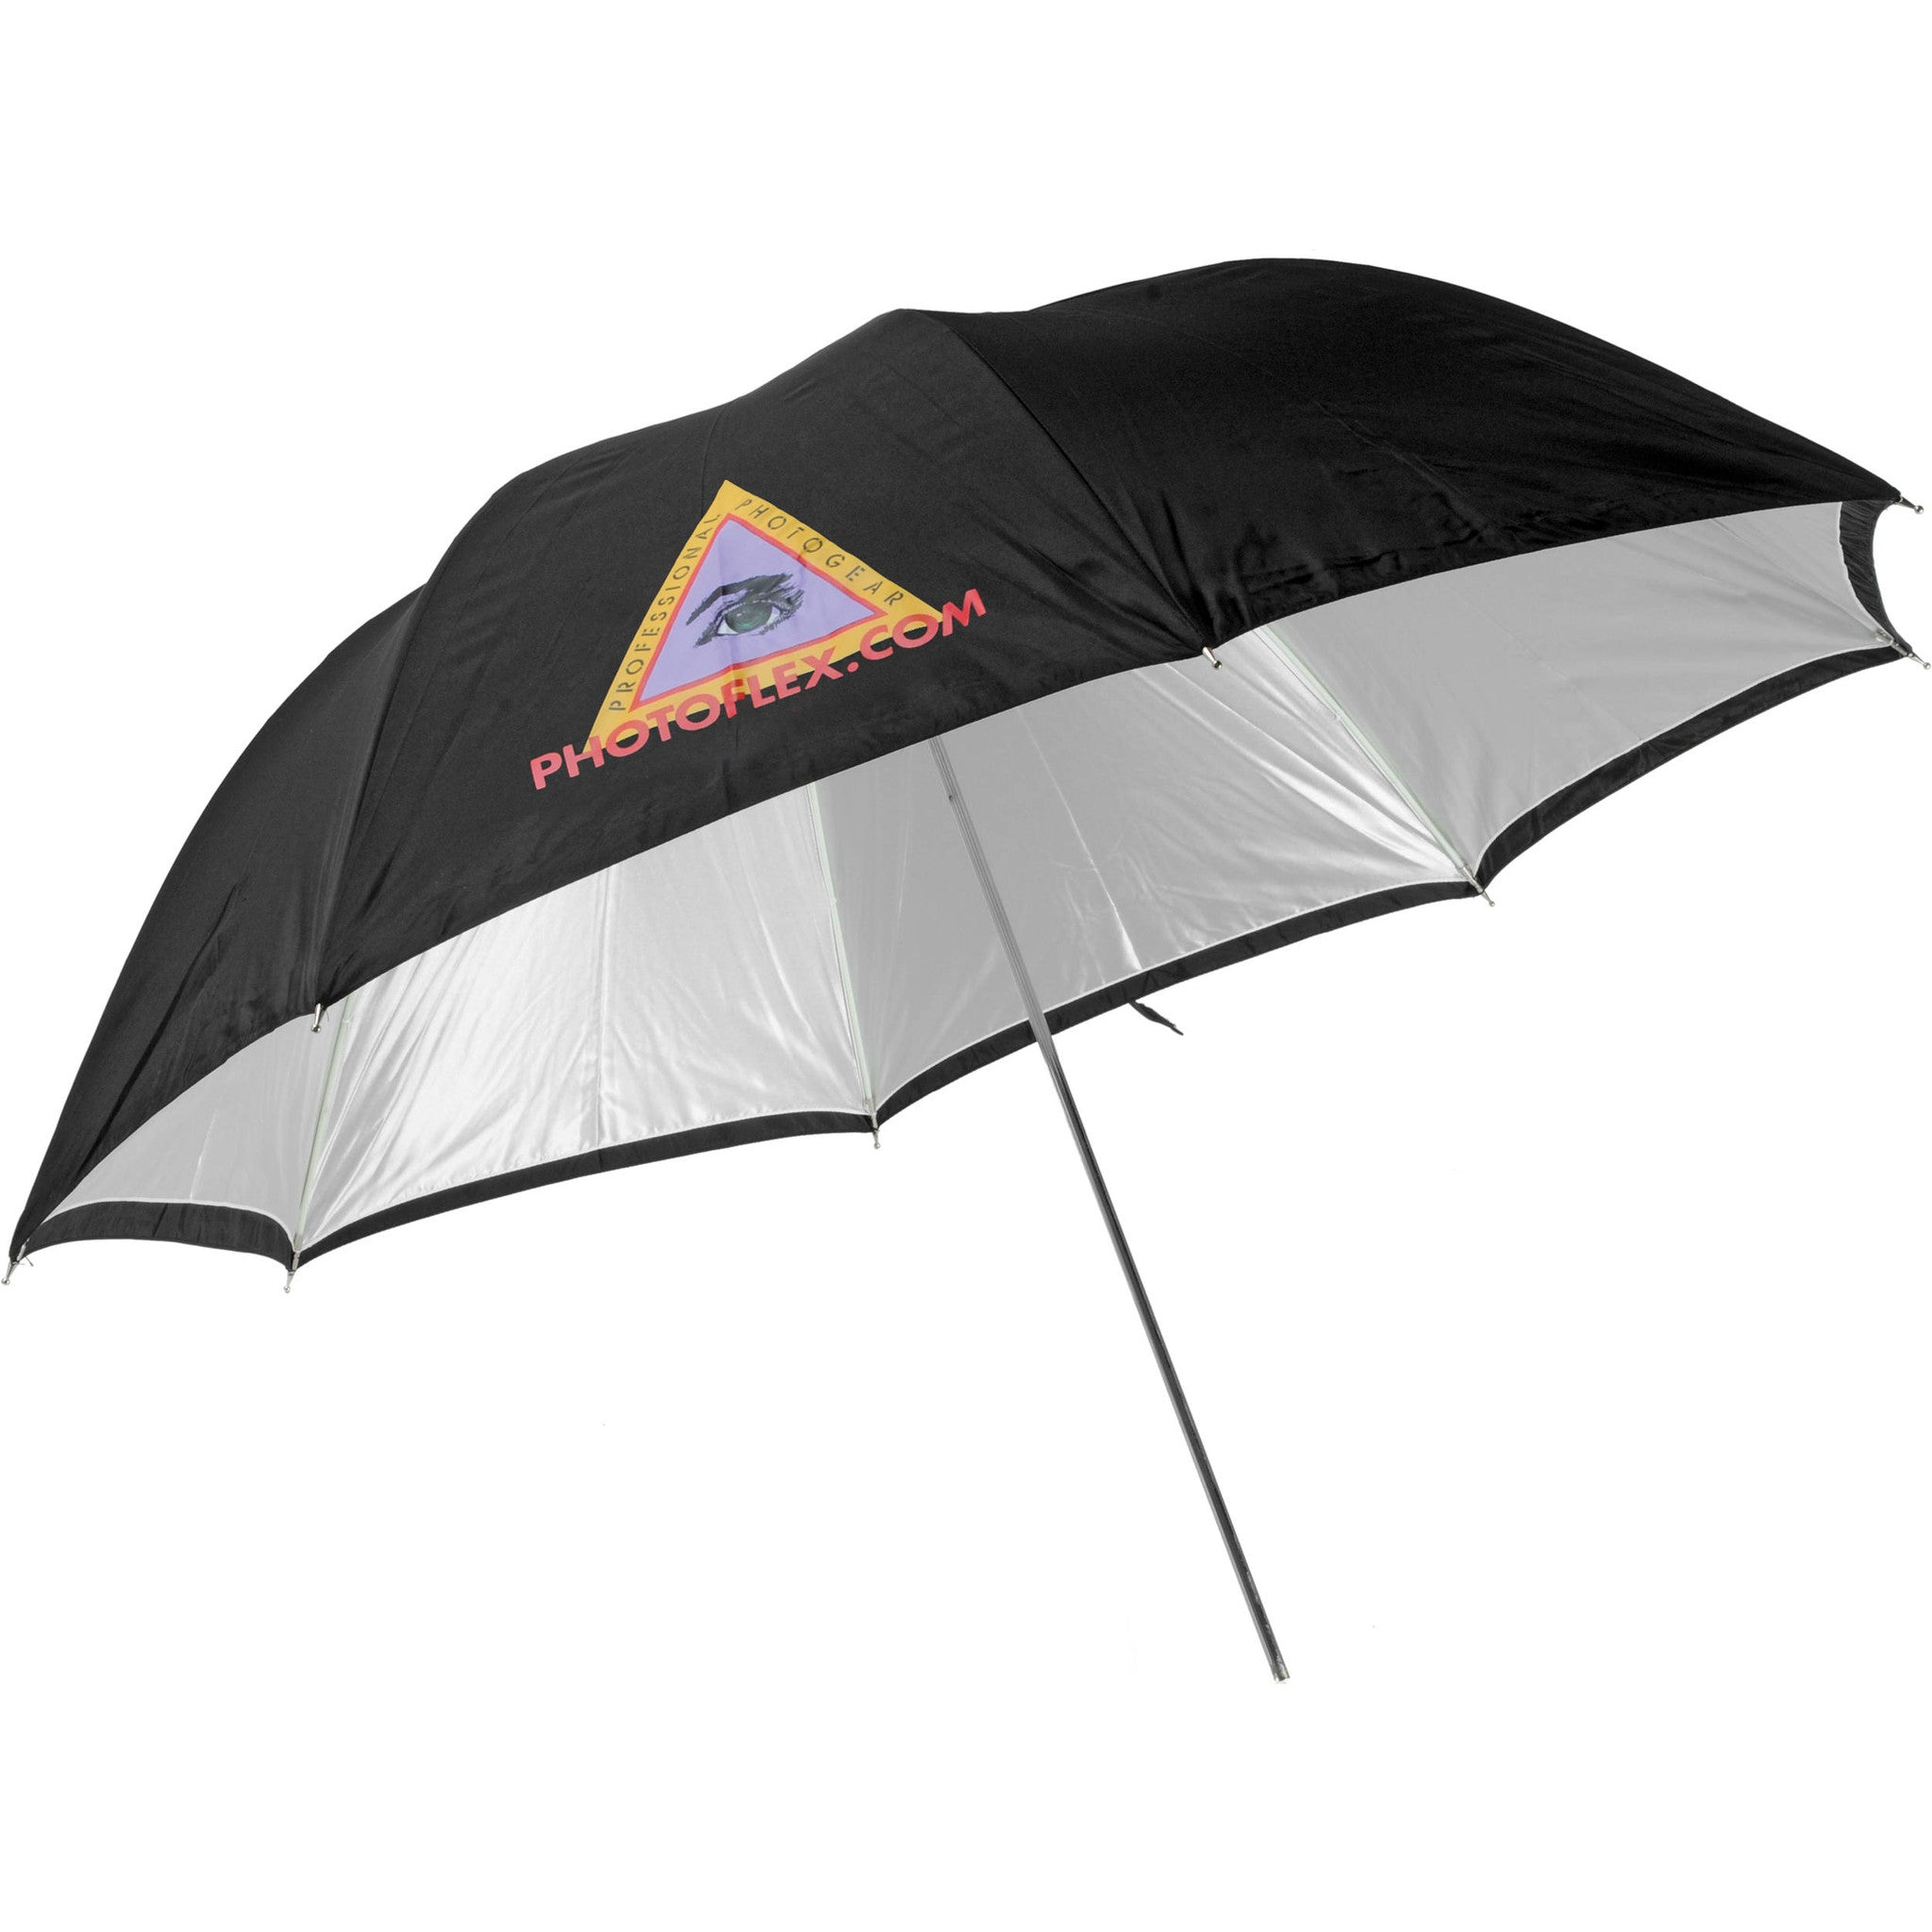 Photoflex Convertible Umbrella - White Satin with Removable Black Cover - 30""